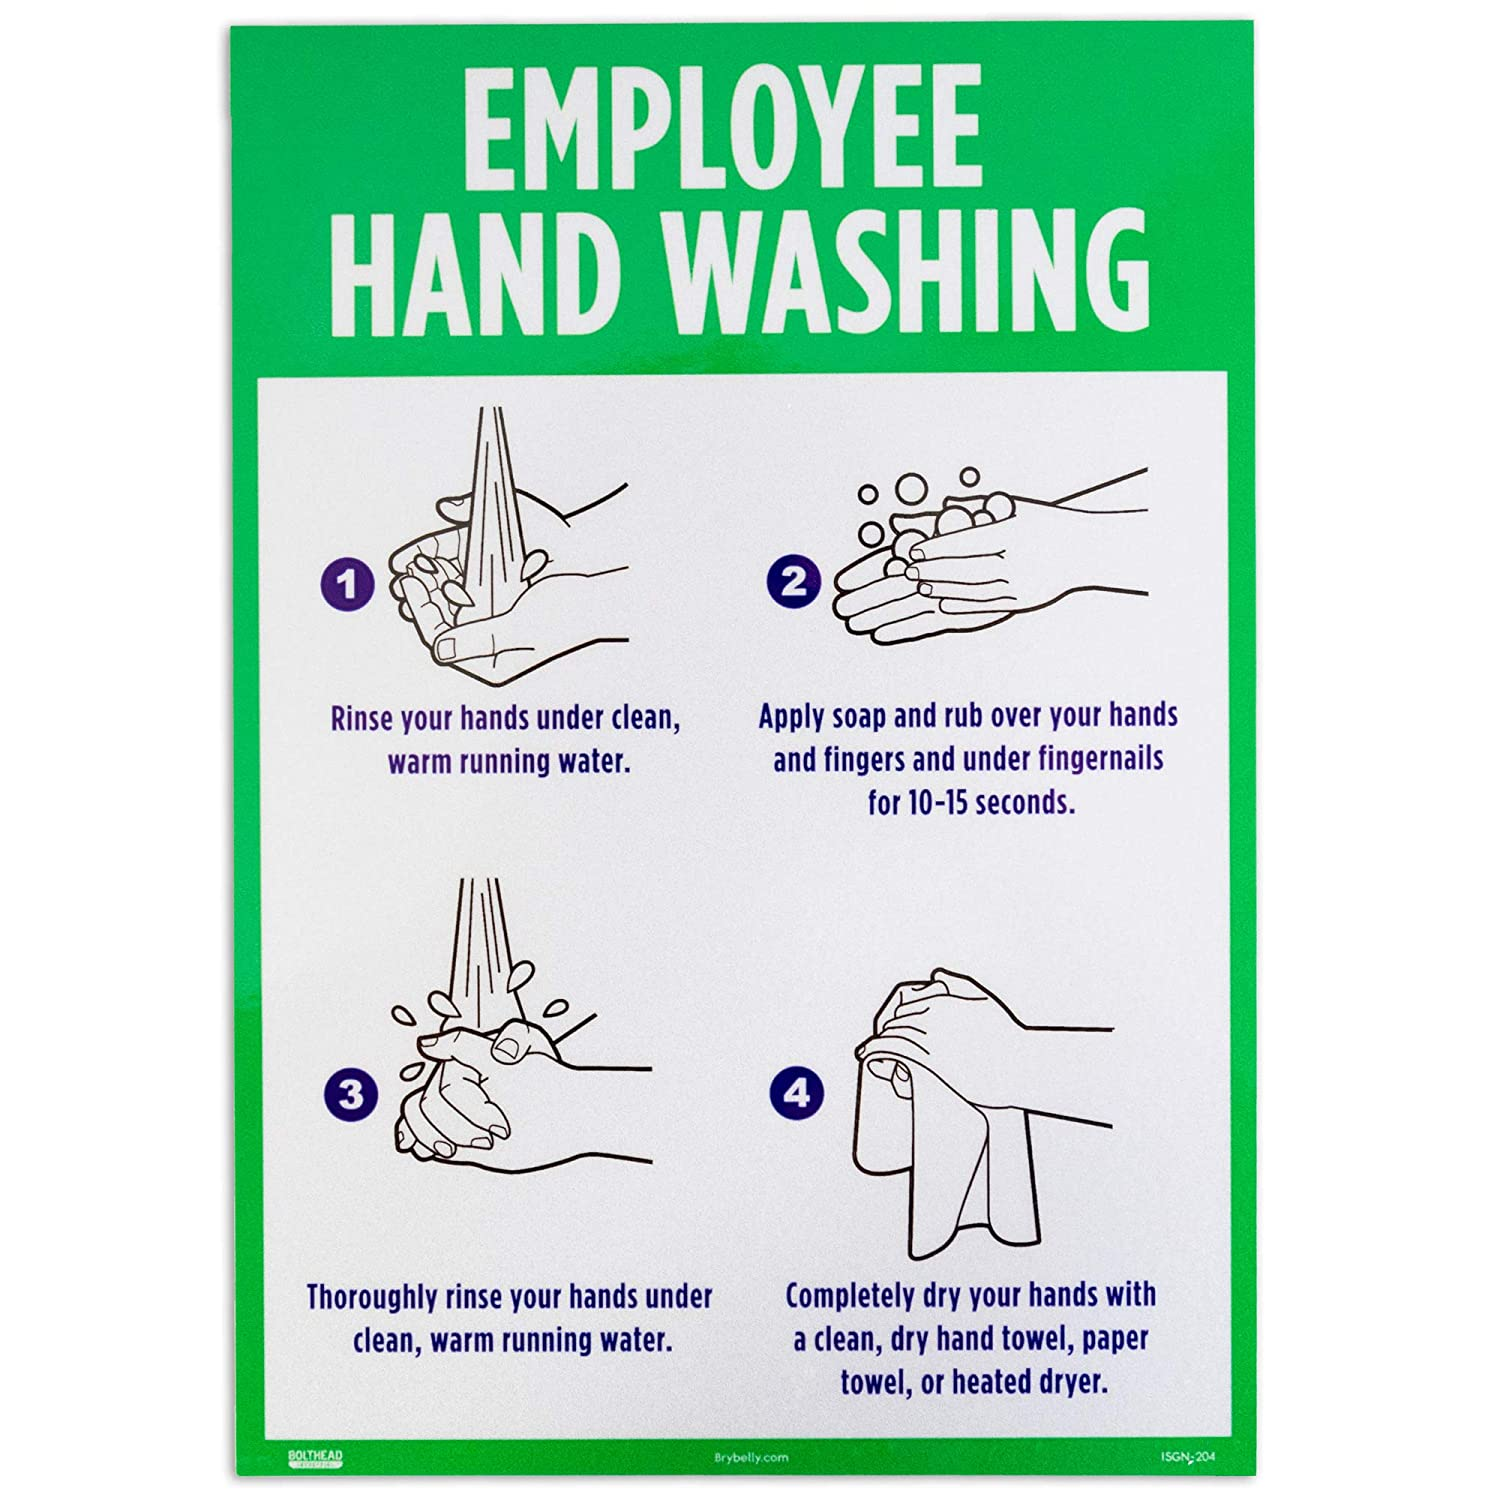 Employee Hand Washing Decal Sign - Public Restroom or Kitchen Sink Signage with Pictures - Handwashing Guide for Work, School, Restaurant, Business - Personal Hygiene Sticker Poster for Commercial Use